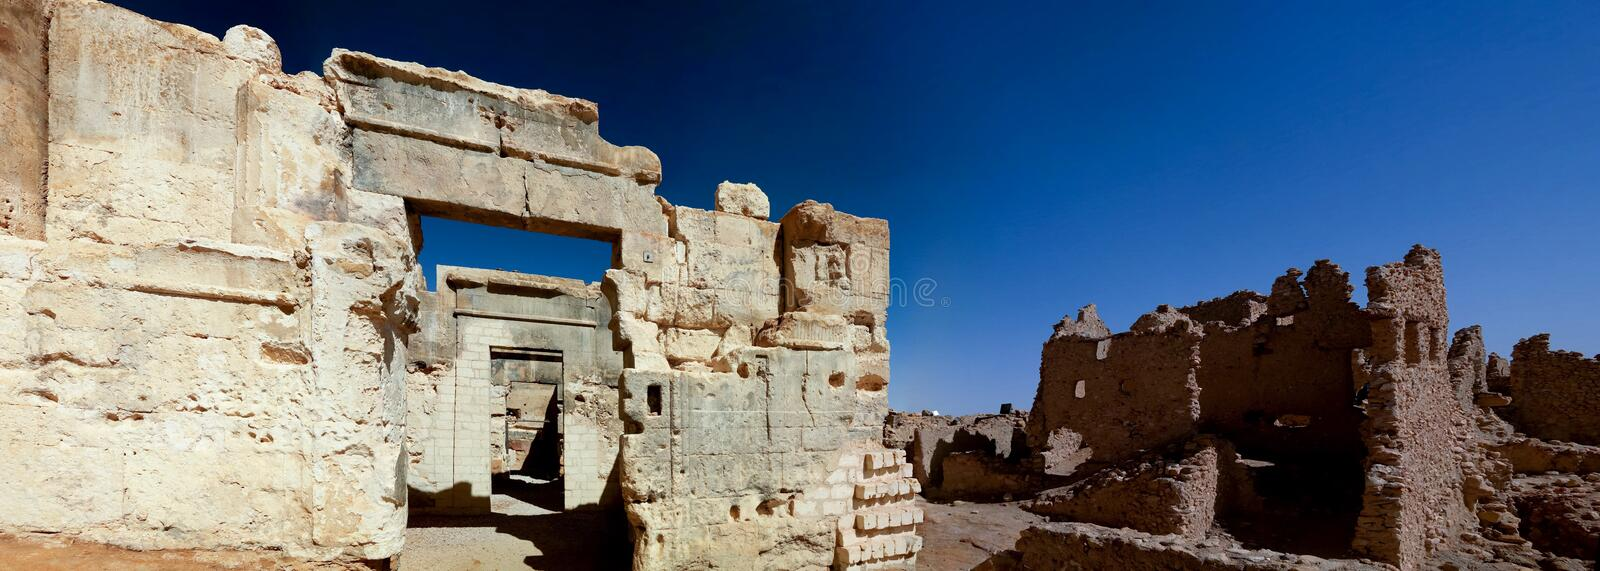 Ruins of the Amun Oracle temple in Siwa oasis, Egypt. Ruins of the Amun Oracle temple . Siwa oasis, Egypt royalty free stock photo